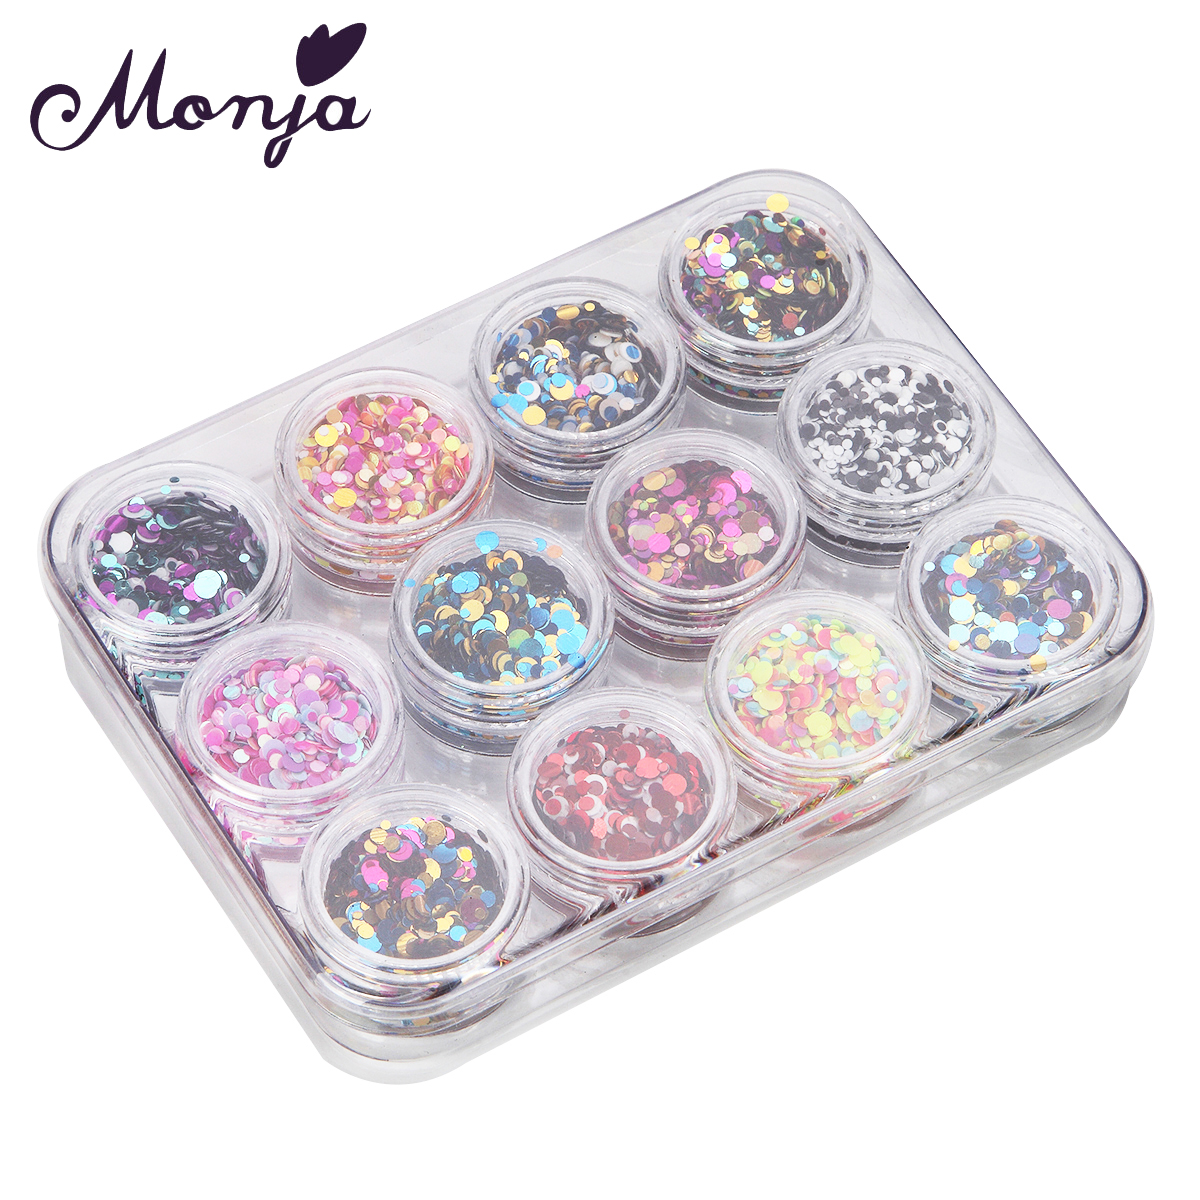 12 Random Mix Color 1-3mm Nail Art Laser Dot Foil Sequins Set Mermaid Style French Round Ultrathin Paillette Decor Palette Slice rhombus style 12 in 1 decorative nail art laser sequins set multicolored